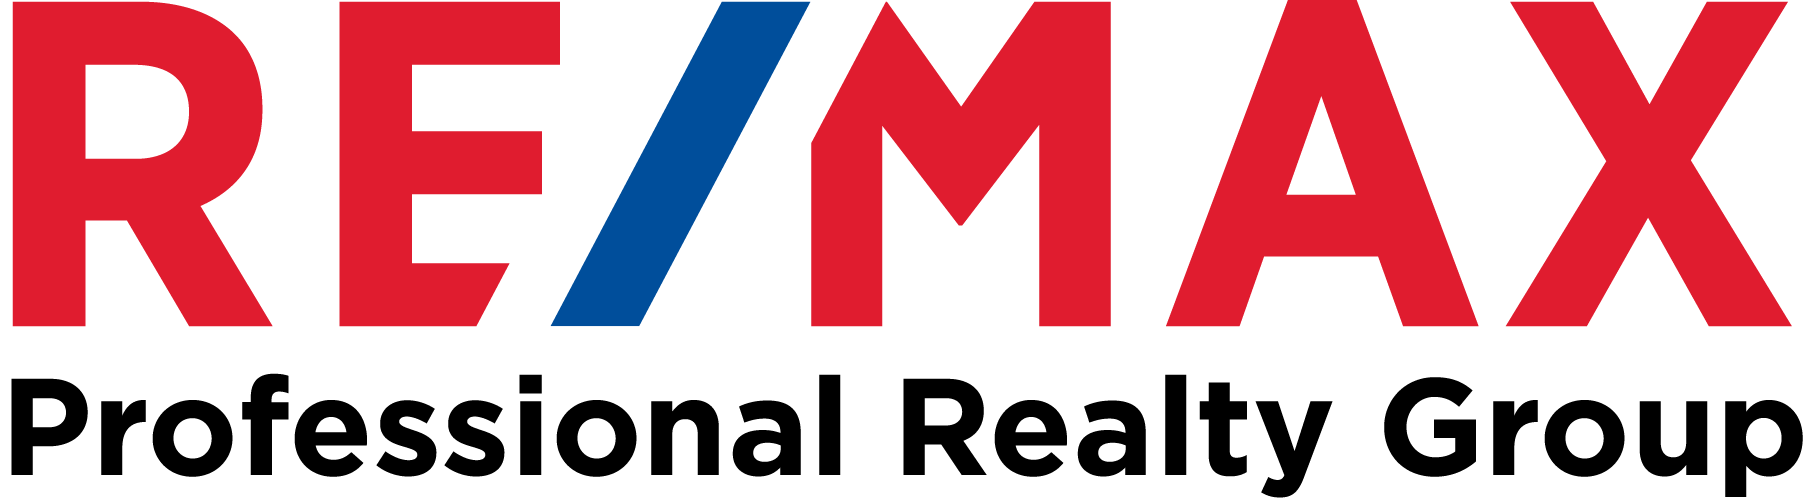 Remax PRG logo - no balloon.png